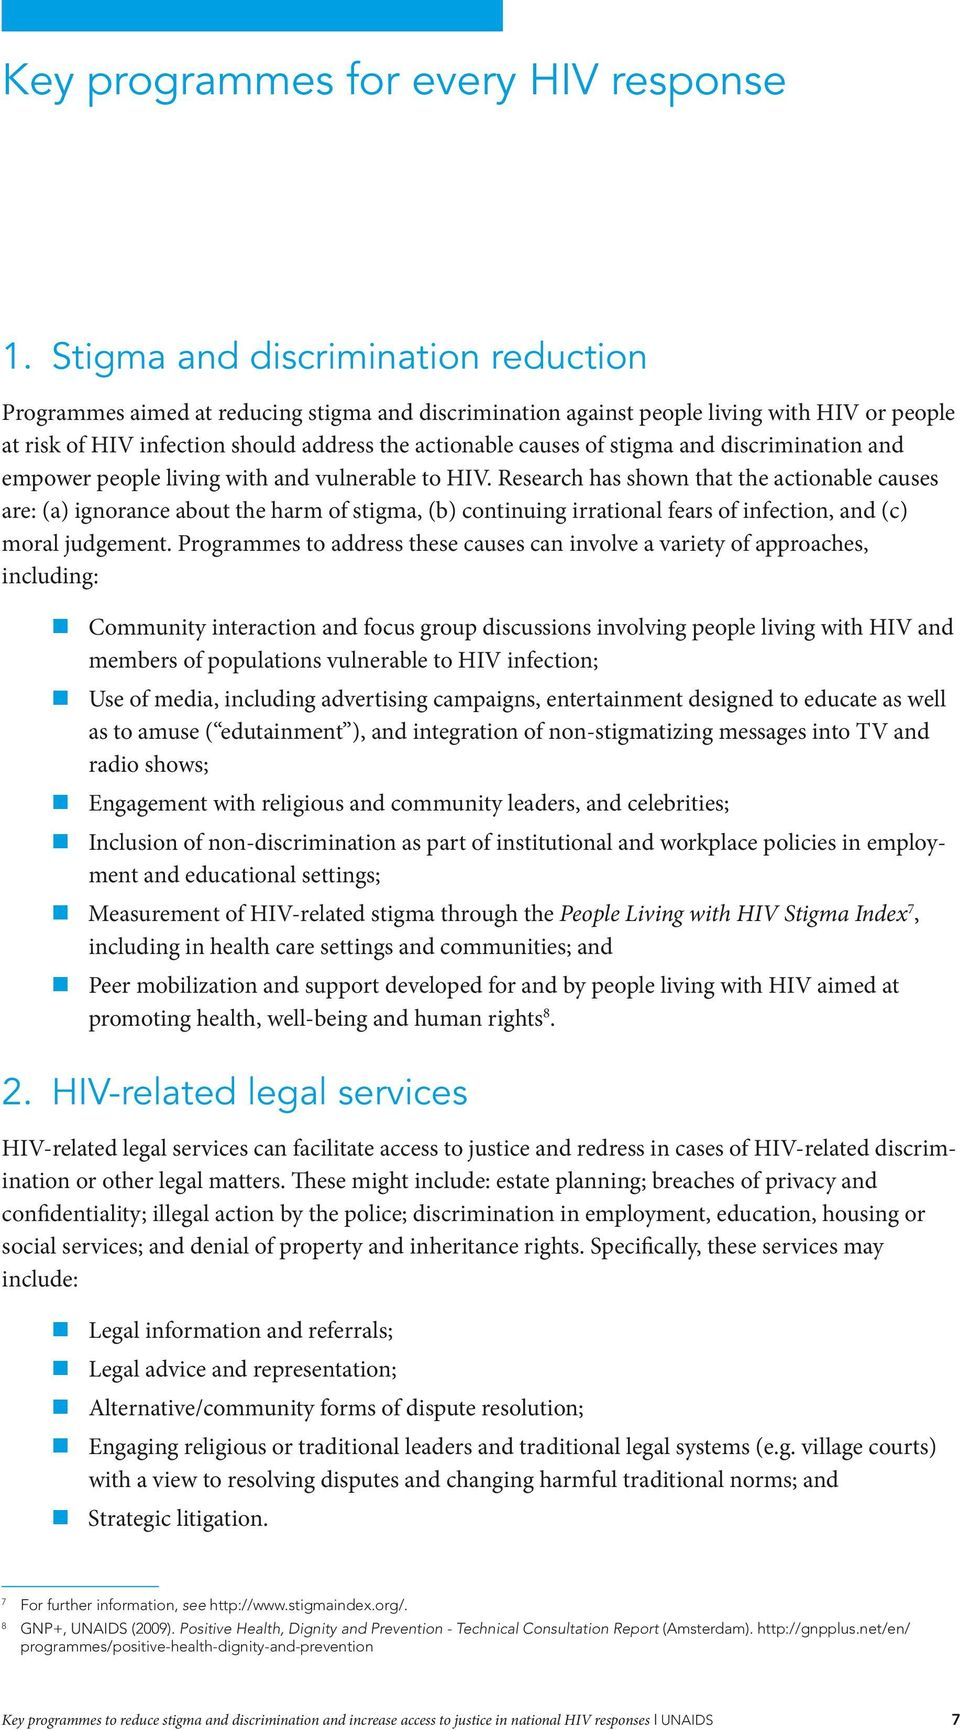 stigma and discrimination and empower people living with and vulnerable to HIV.